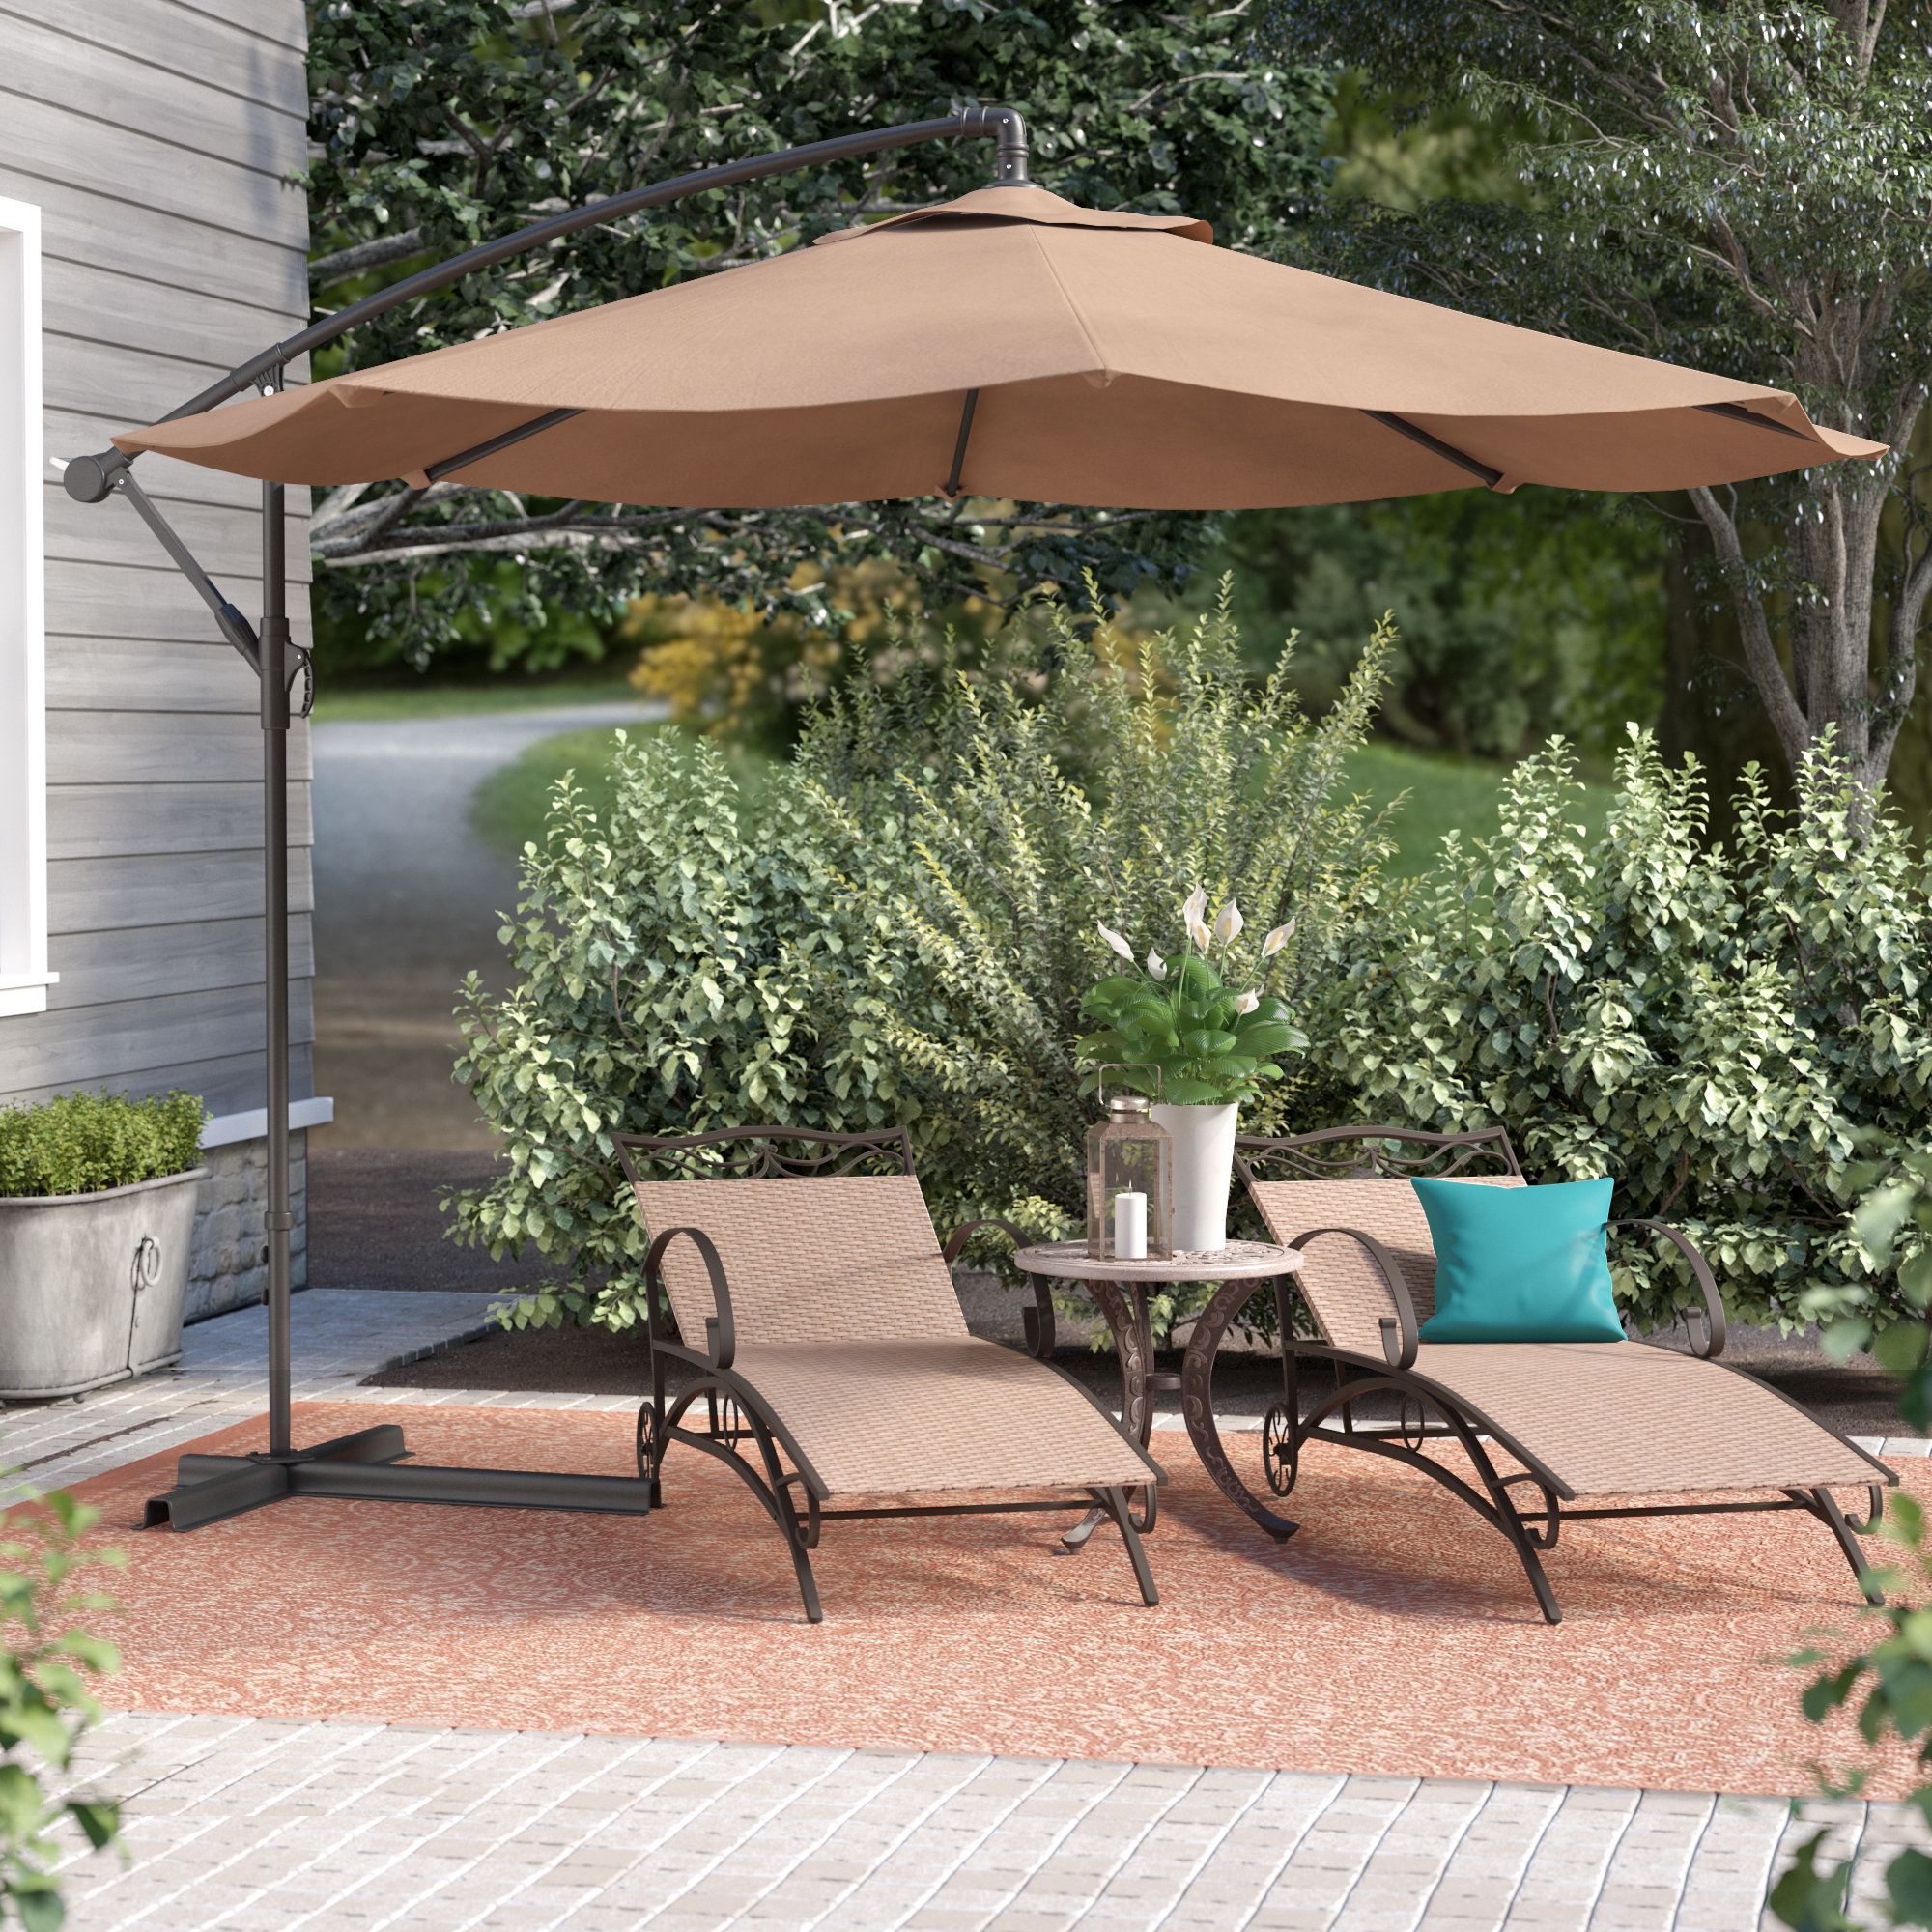 Bormann 10' Cantilever Umbrella Throughout Current Alyssa Cantilever Umbrellas (View 10 of 20)